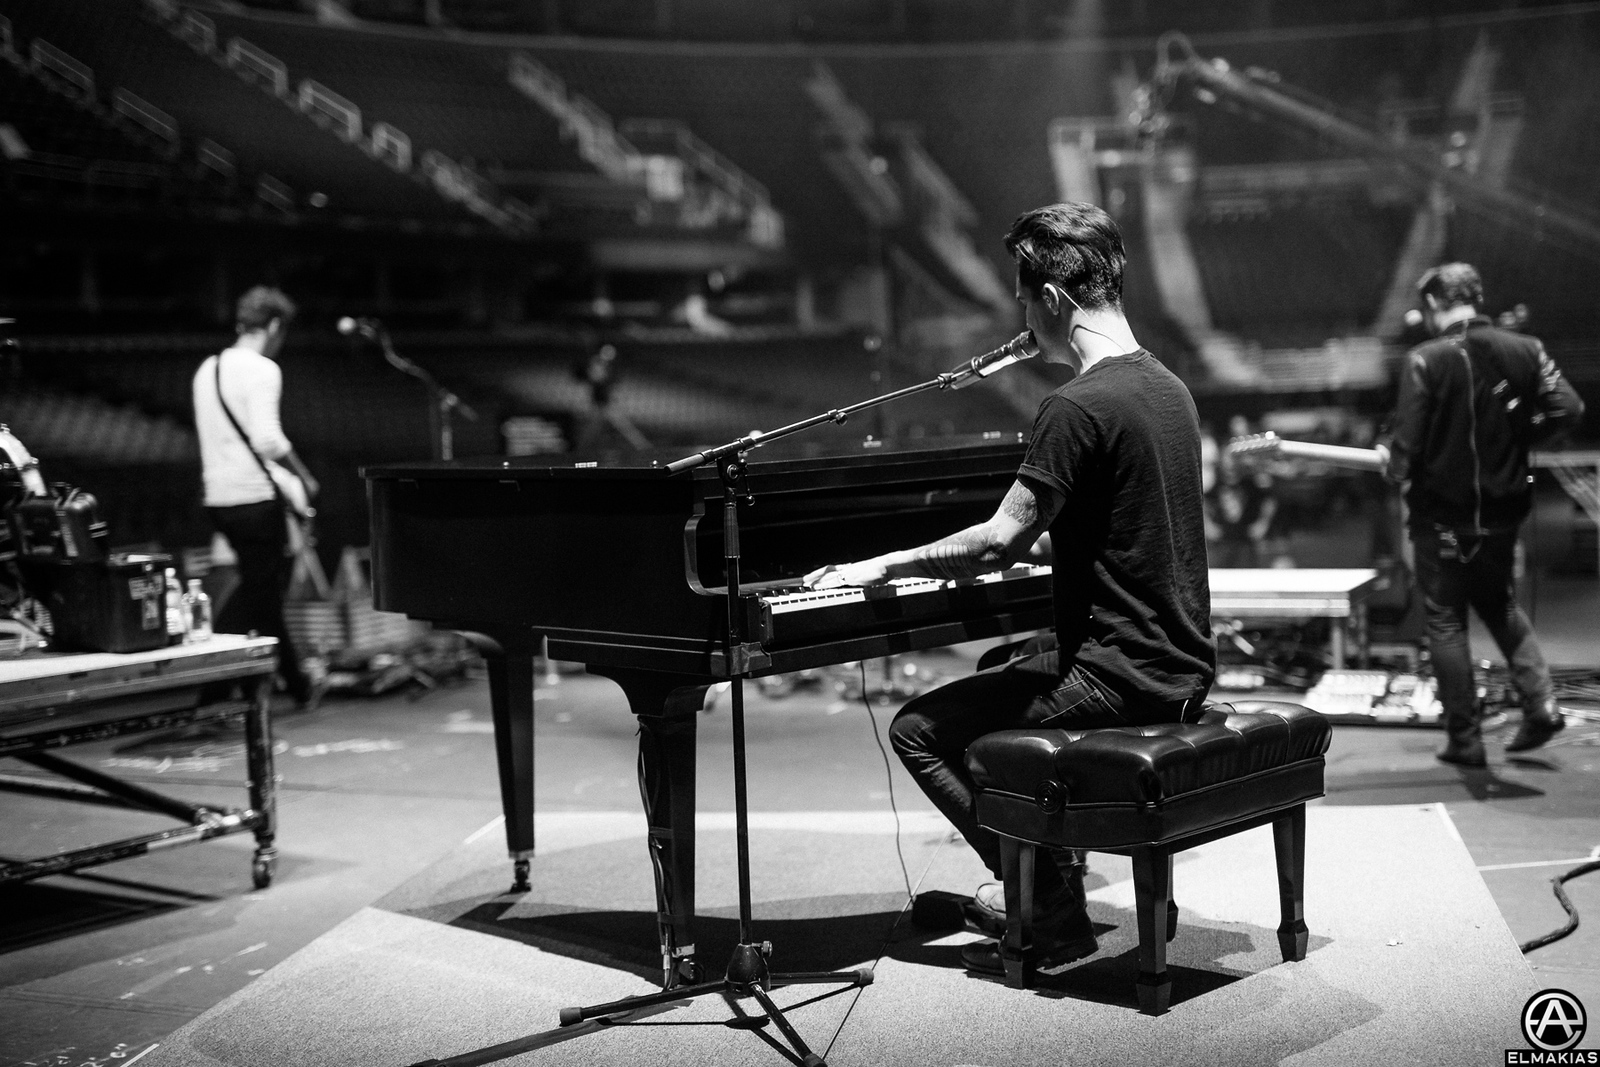 Brendon Urie of Panic! At The Disco at rehearsals for the Alternative Press Music Awards 2015 by Adam Elmakias